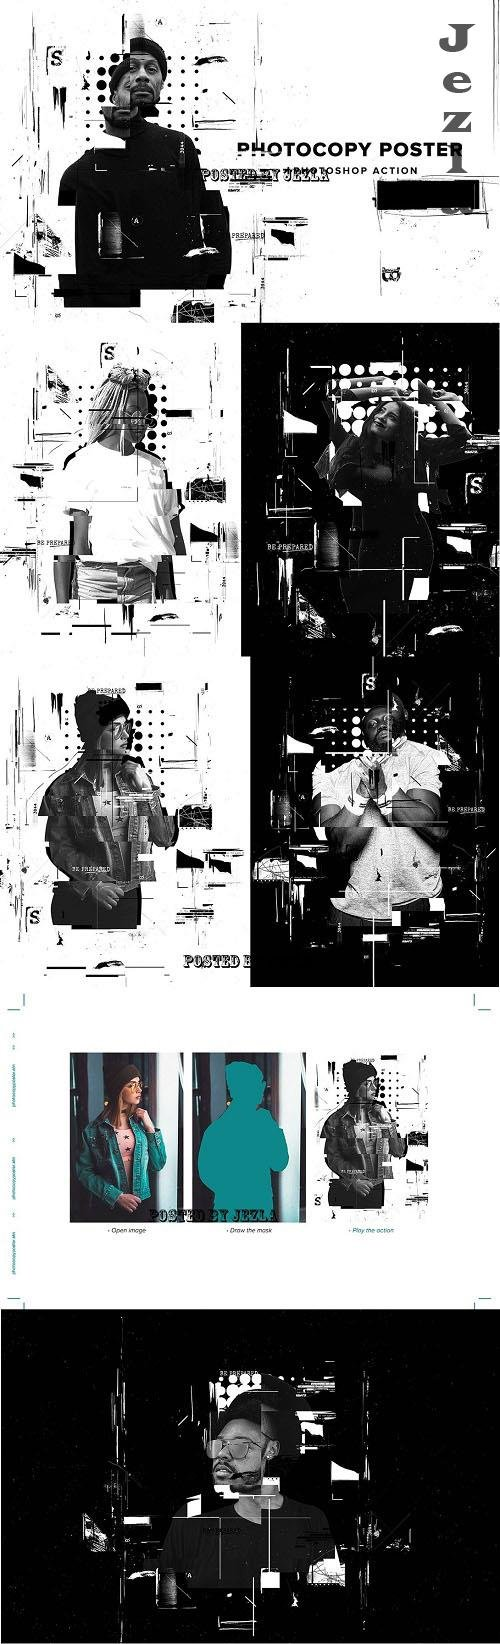 Photocopy Glitch Poster PS Action - 6357766